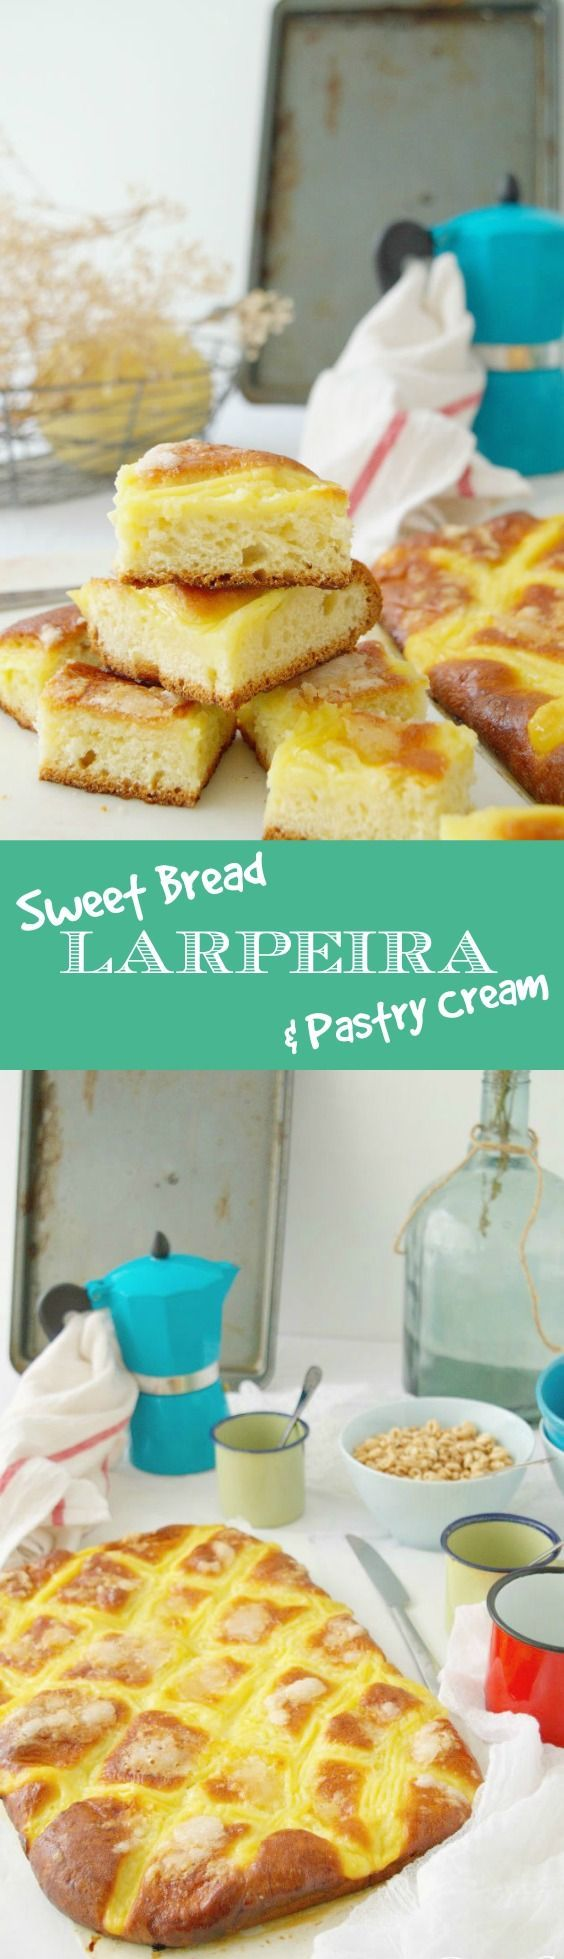 Sweet bread & Pastry Cream Larpeira Typical from